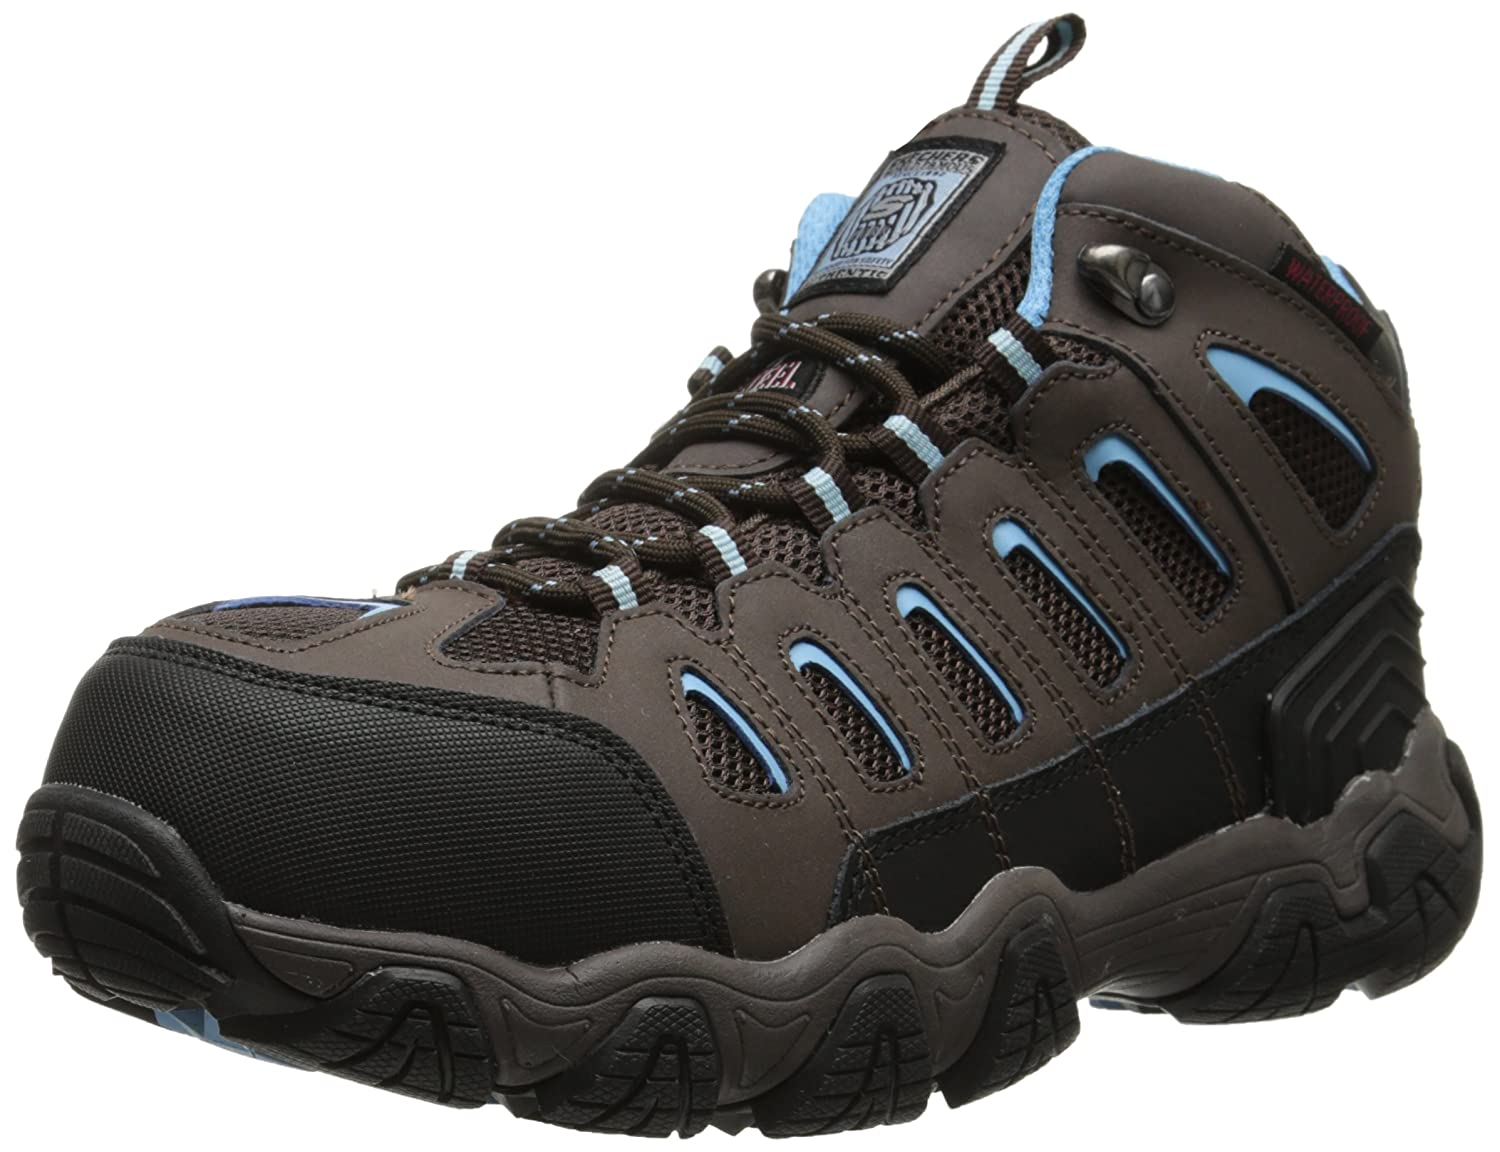 caterpillar shoes astm f2413-11 standards and poor rating scales